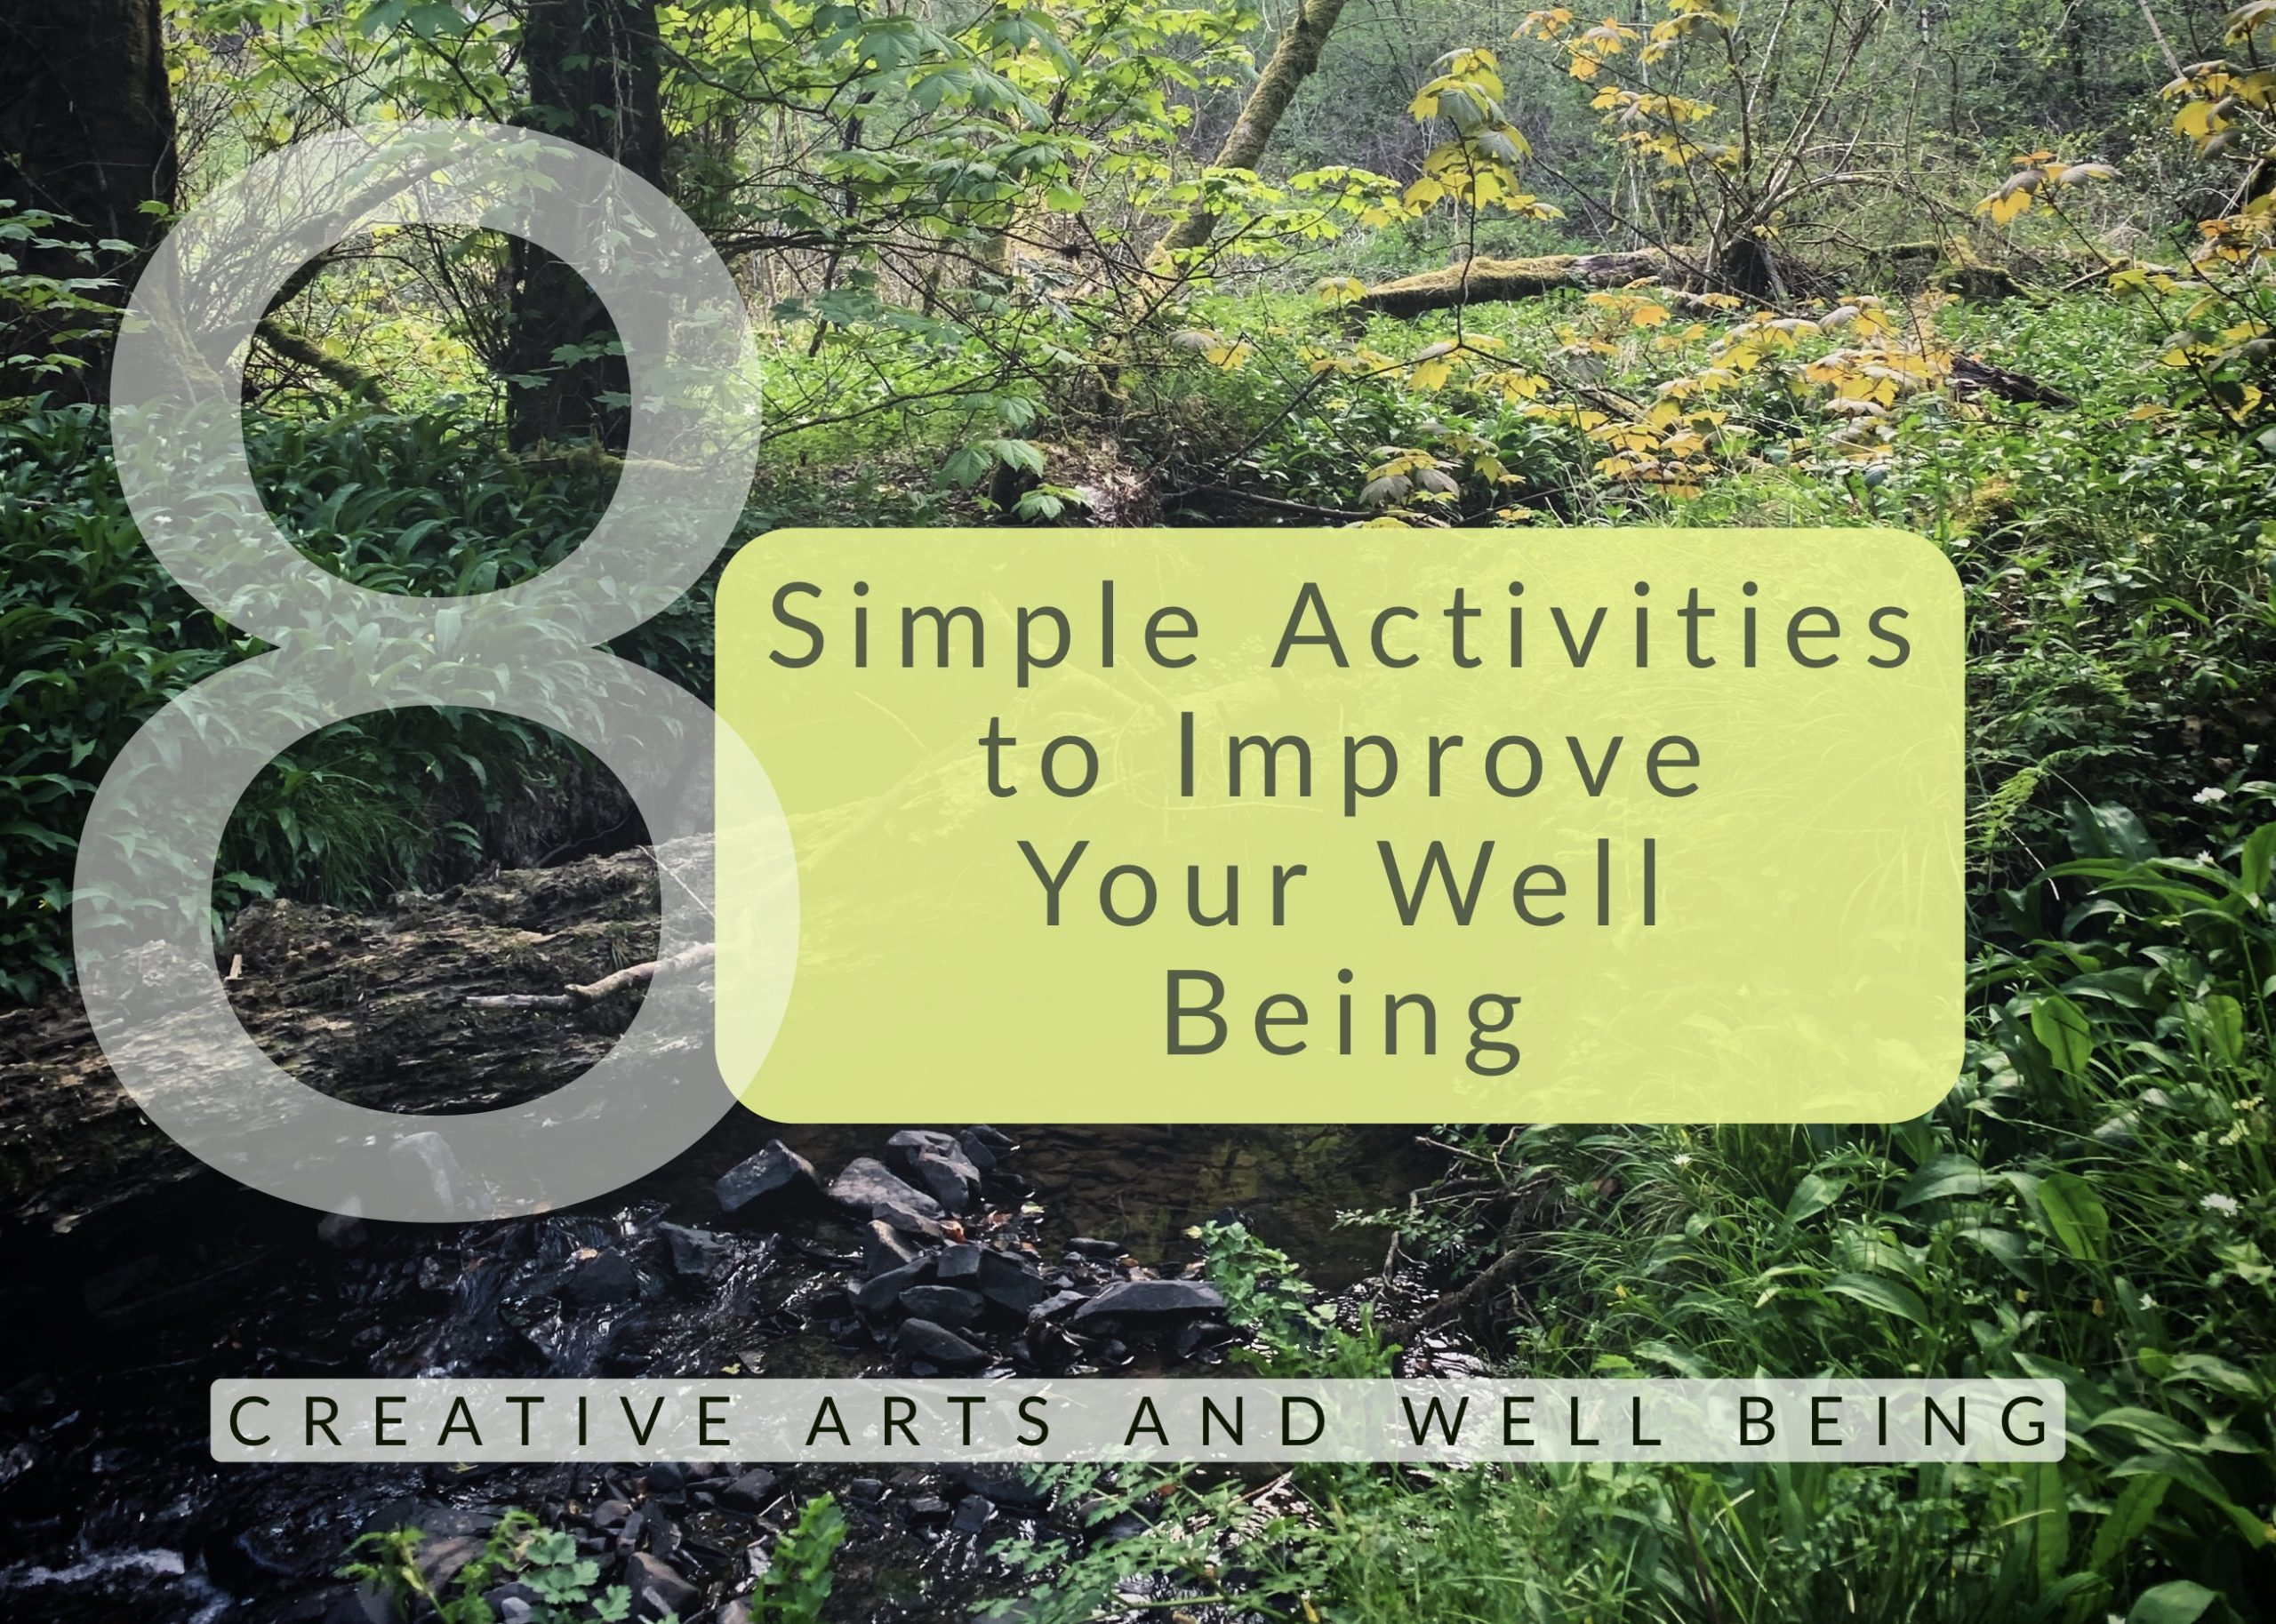 8 Simple Activities to Improve Your Well Being